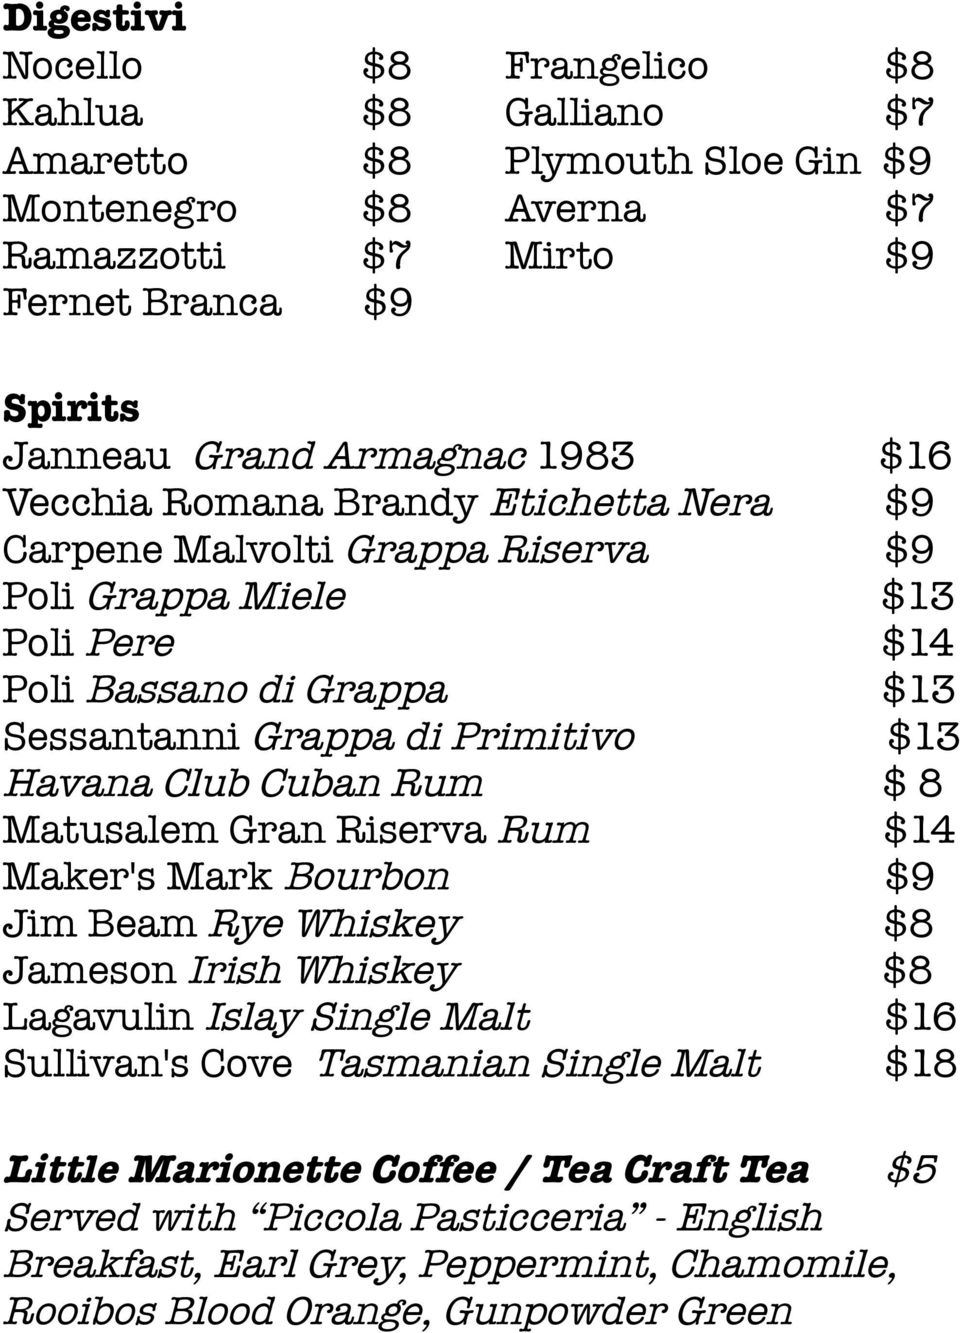 Havana Club Cuban Rum $ 8 Matusalem Gran Riserva Rum $14 Maker's Mark Bourbon $9 Jim Beam Rye Whiskey $8 Jameson Irish Whiskey $8 Lagavulin Islay Single Malt $16 Sullivan's Cove